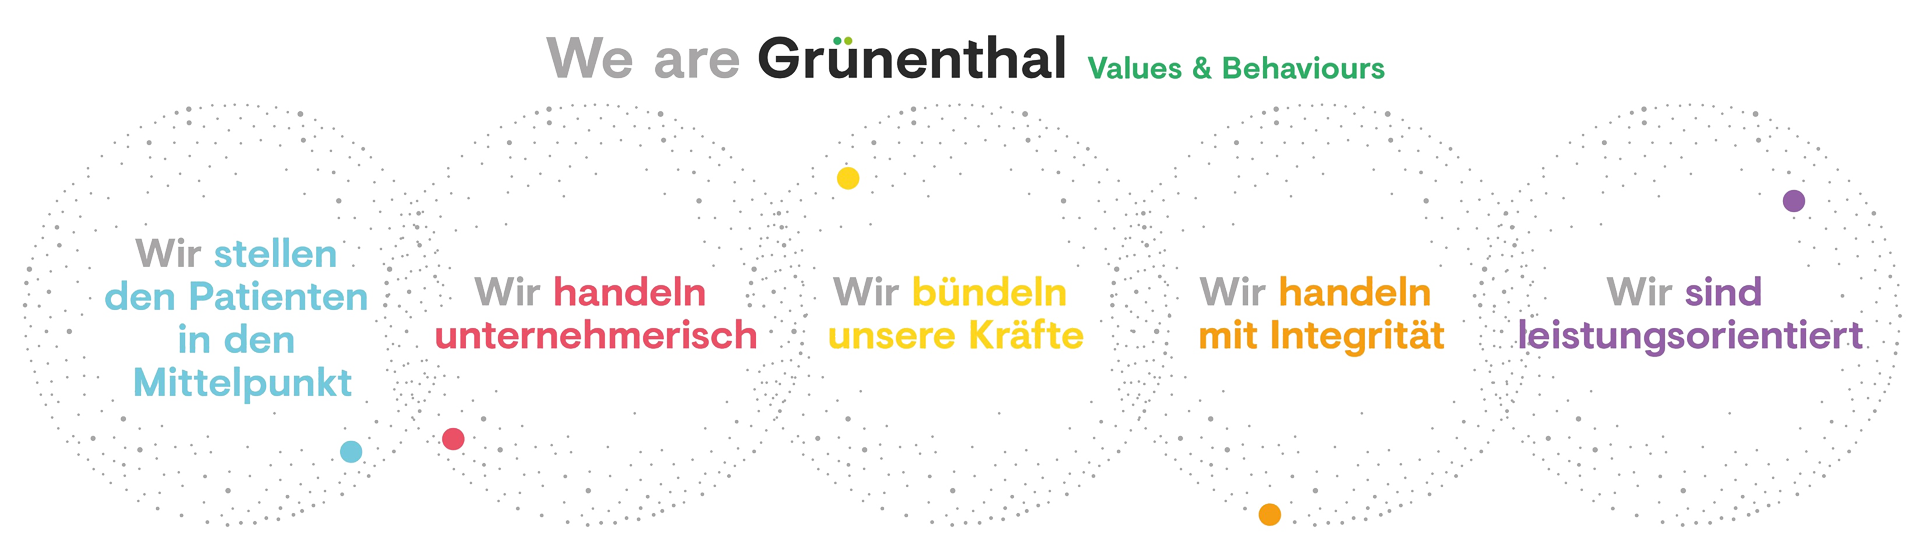 We are Grünenthal  Values & Behaviours